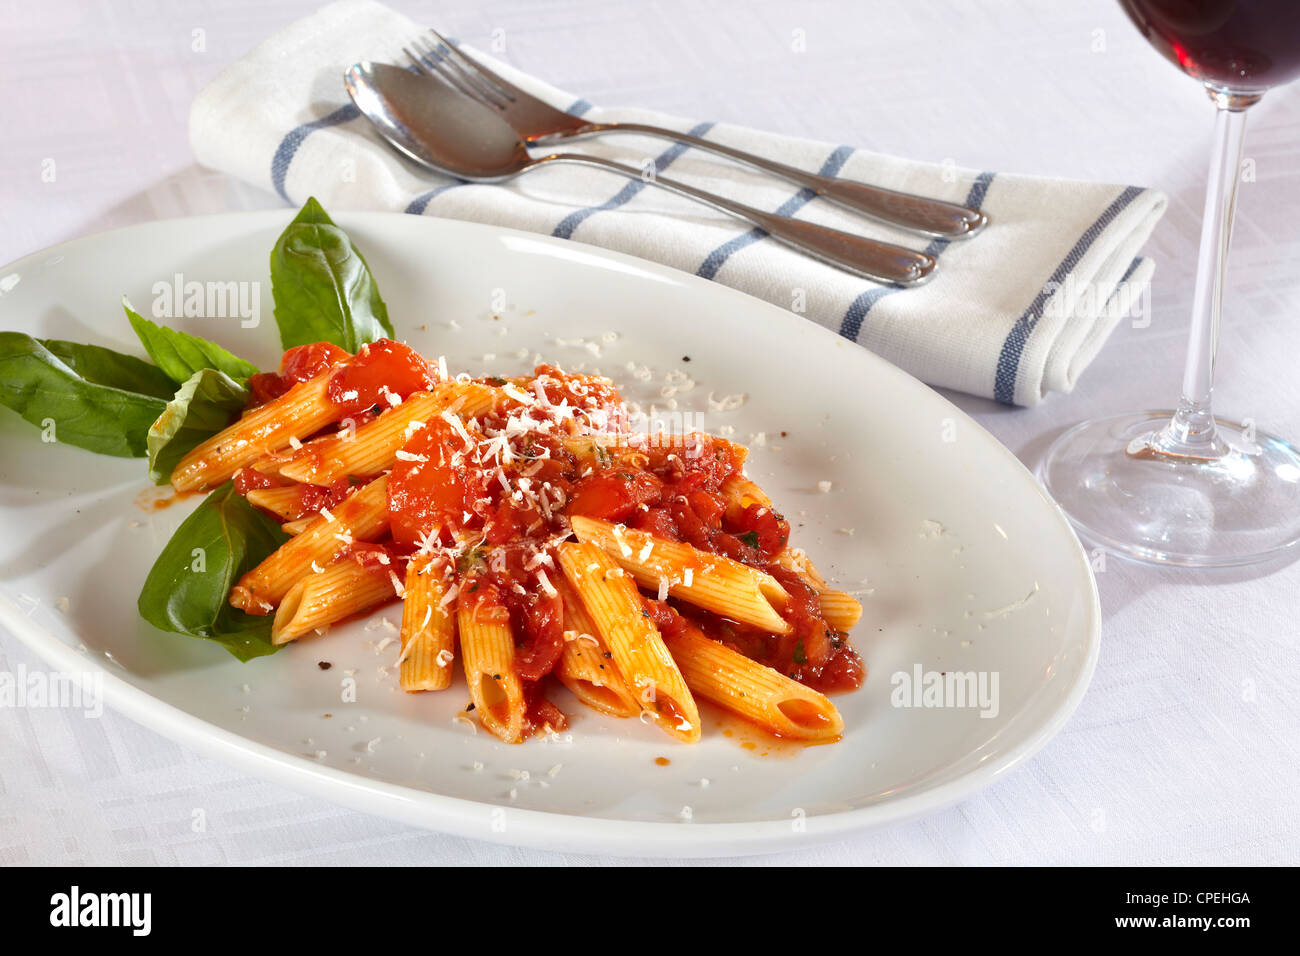 Pasta decorated with basil leaves. White plate on white table cloth, spoon and fork on a napkin. A glass of red - Stock Image